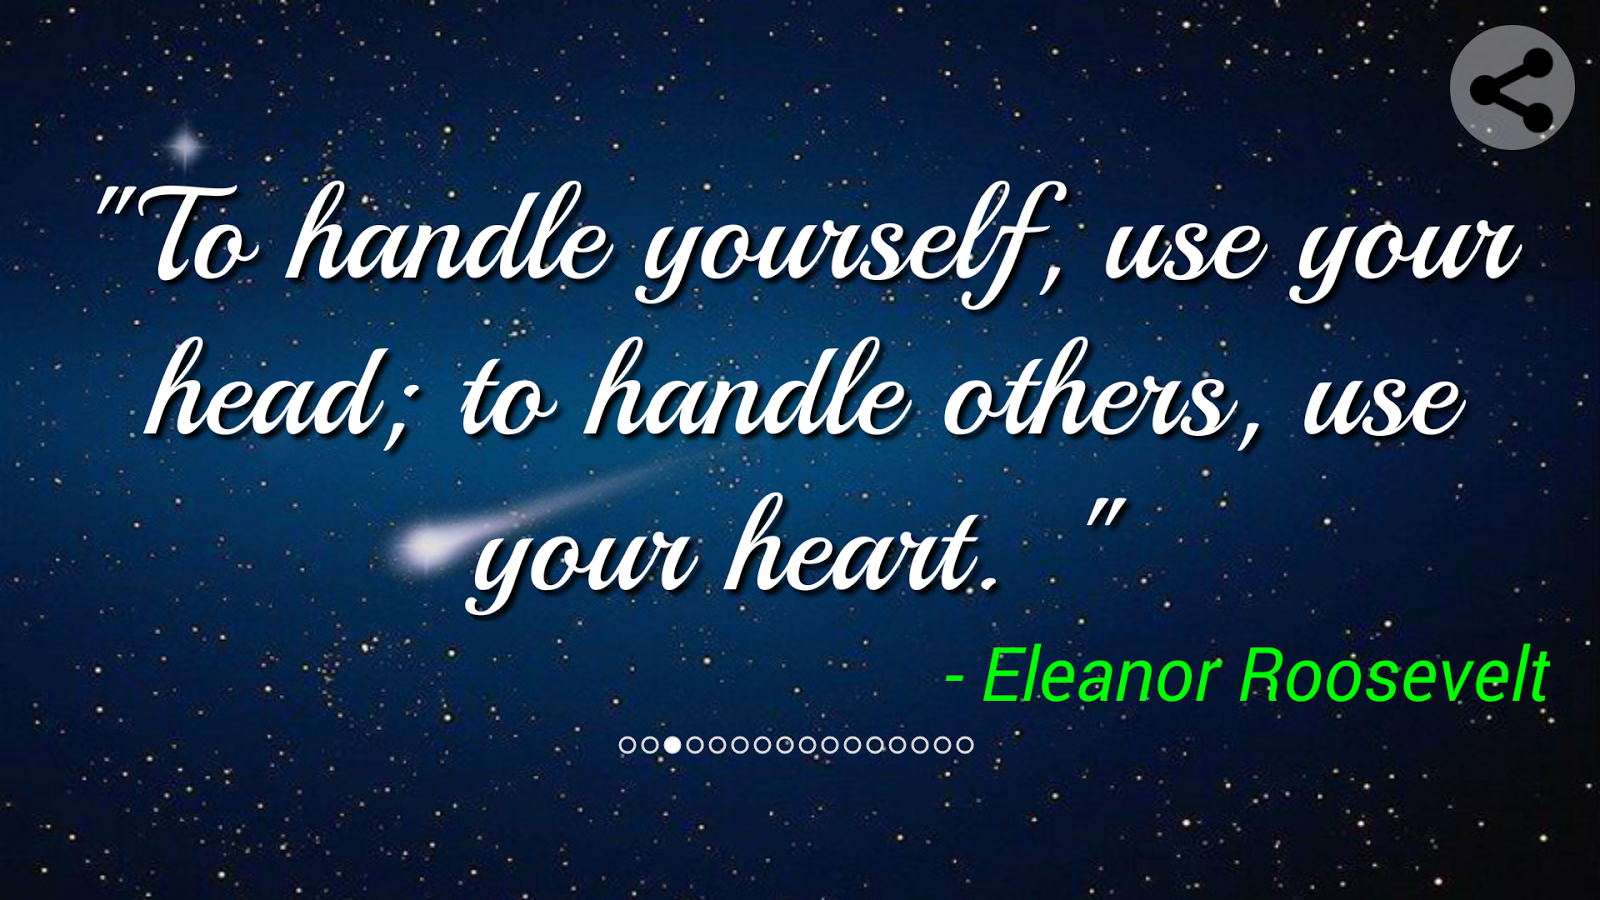 Quotes Collection Quote Collection  Android Apps On Google Play